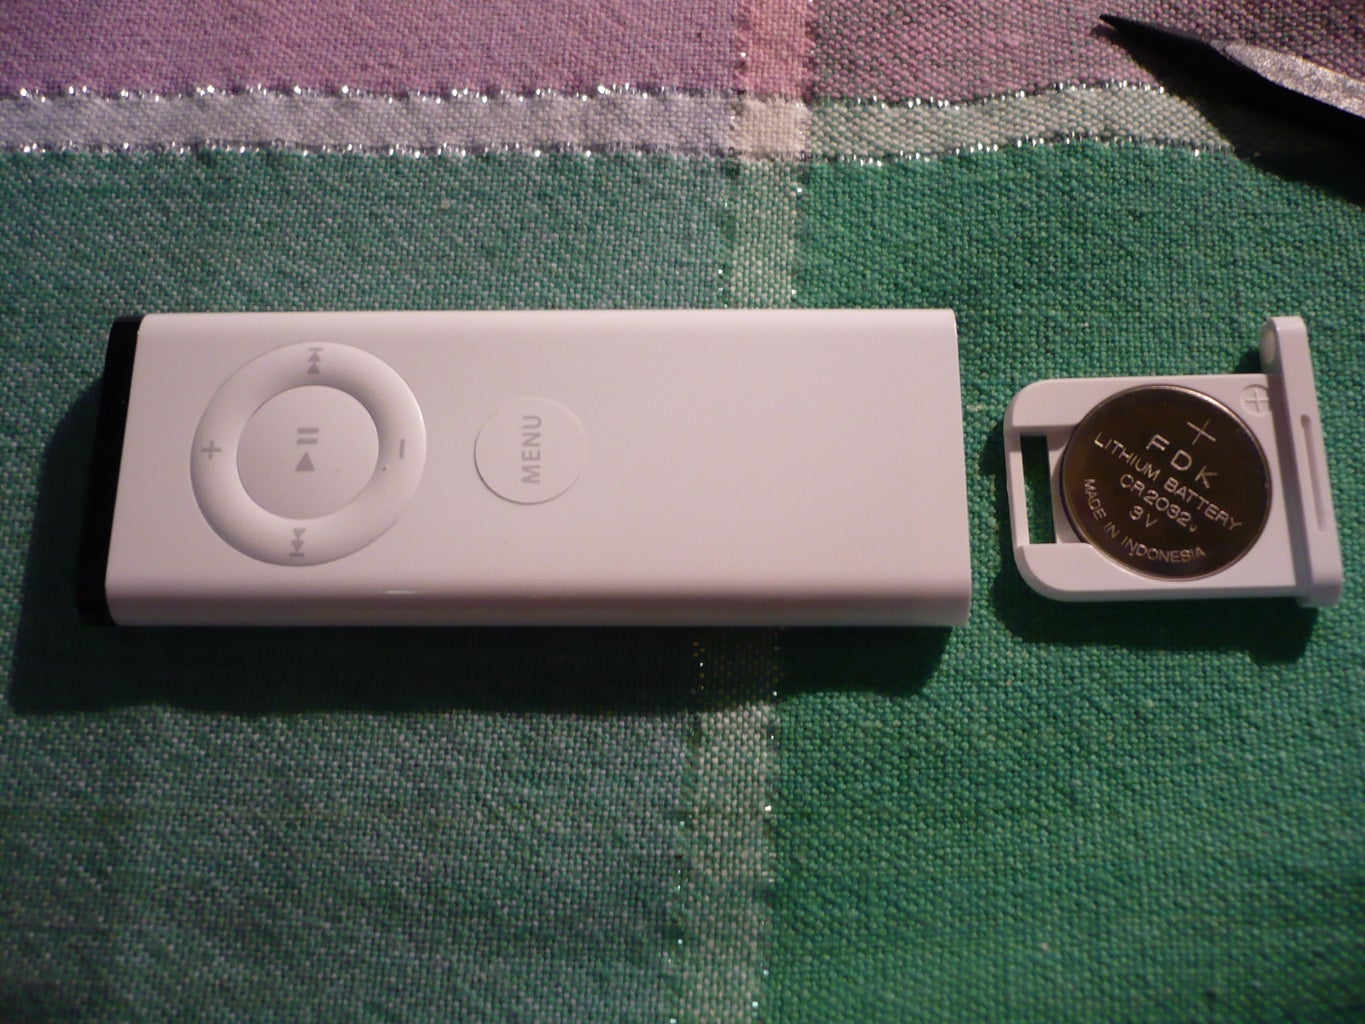 Discovering the Apple Remote